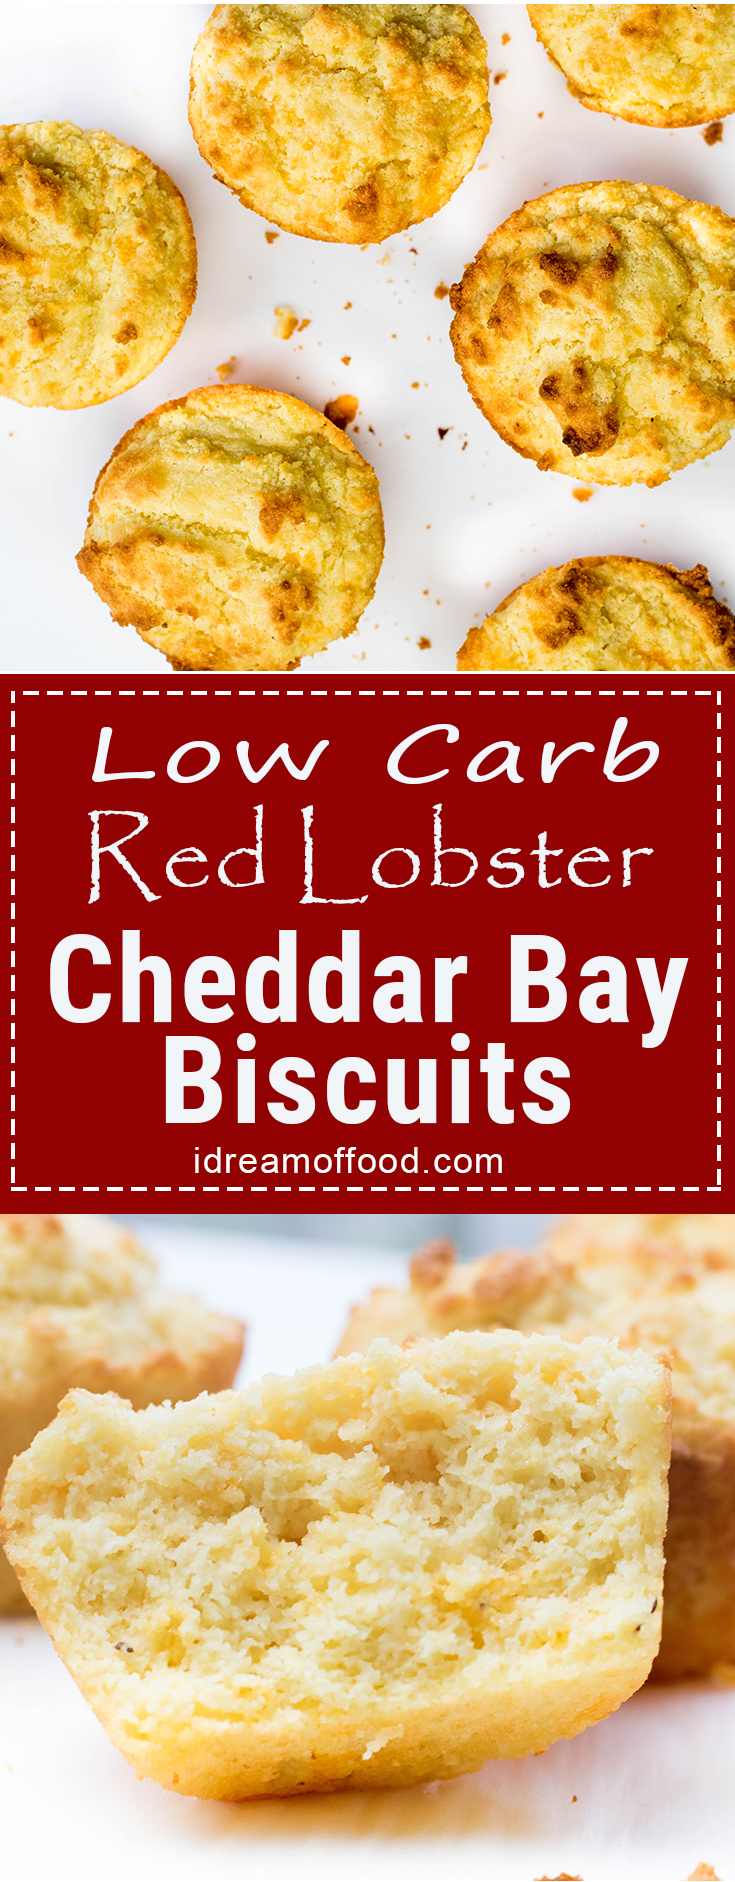 Delicious low-carb biscuits/muffins with all the flavors of Red Lobster Cheddar Bay biscuits. This recipe has changed my life. I guarantee no one will be able to tell these aren't a high-carb bread. These are perfect for a ketogenic diet and lifestyle. LCHF, Atkins, Banting, Low Carb,